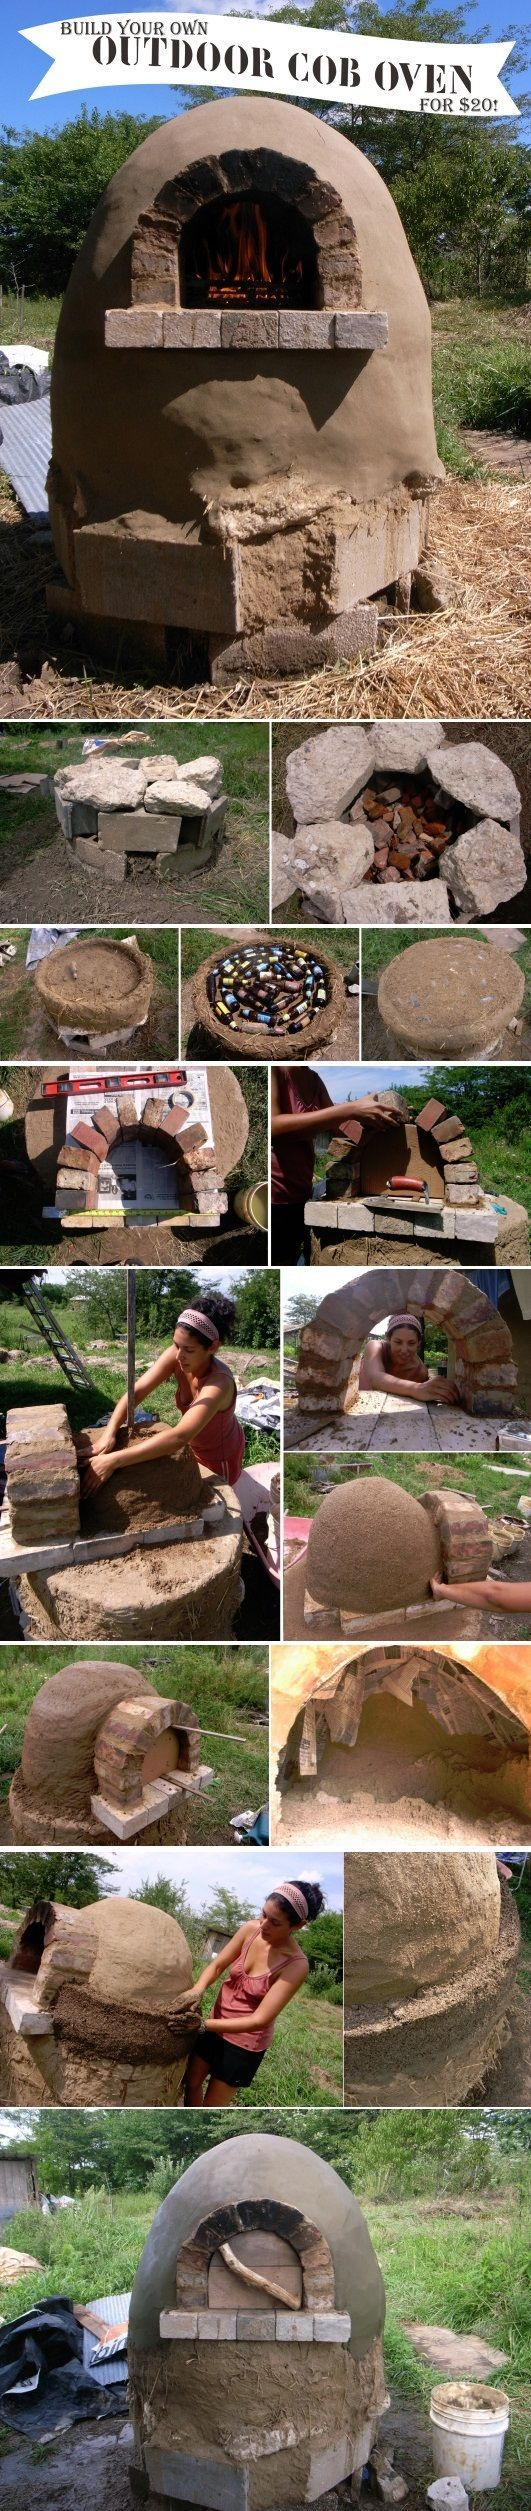 BUILD YOUR OWN $20 OUTDOOR COB OVEN: WEEKEND PROJECTS ...